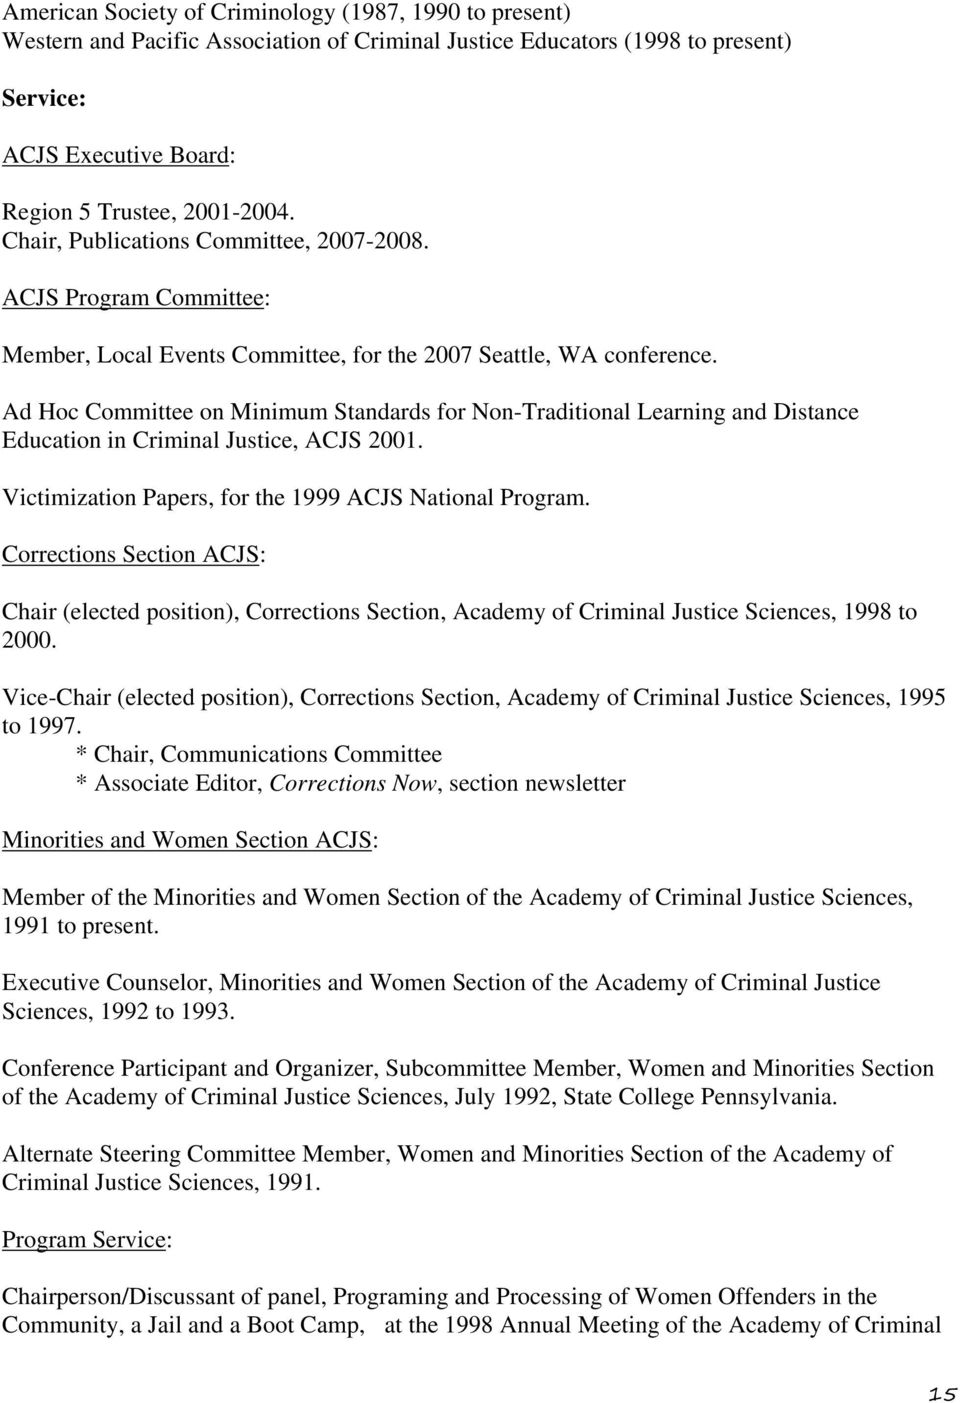 Ad Hoc Committee on Minimum Standards for Non-Traditional Learning and Distance Education in Criminal Justice, ACJS 2001. Victimization Papers, for the 1999 ACJS National Program.